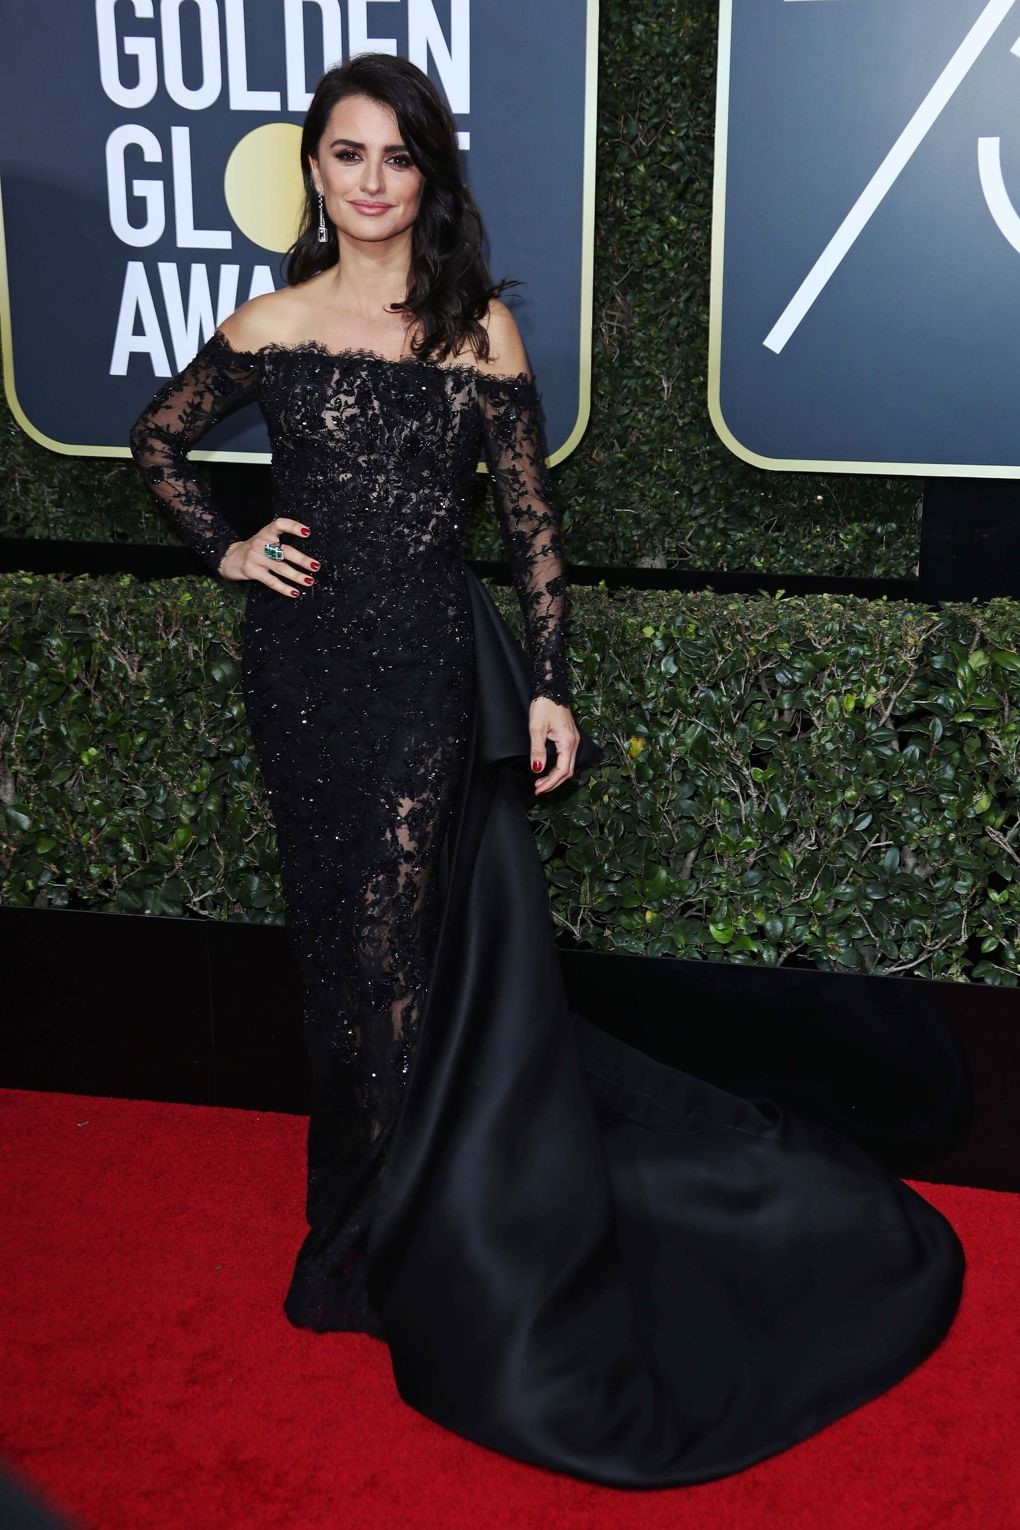 The ever-Gorgeous Penelope Cruz looked splendid in a Ralph and Russo Couture. golden globes 2018 JD's top 13 red carpet looks of Golden Globes 2018 8